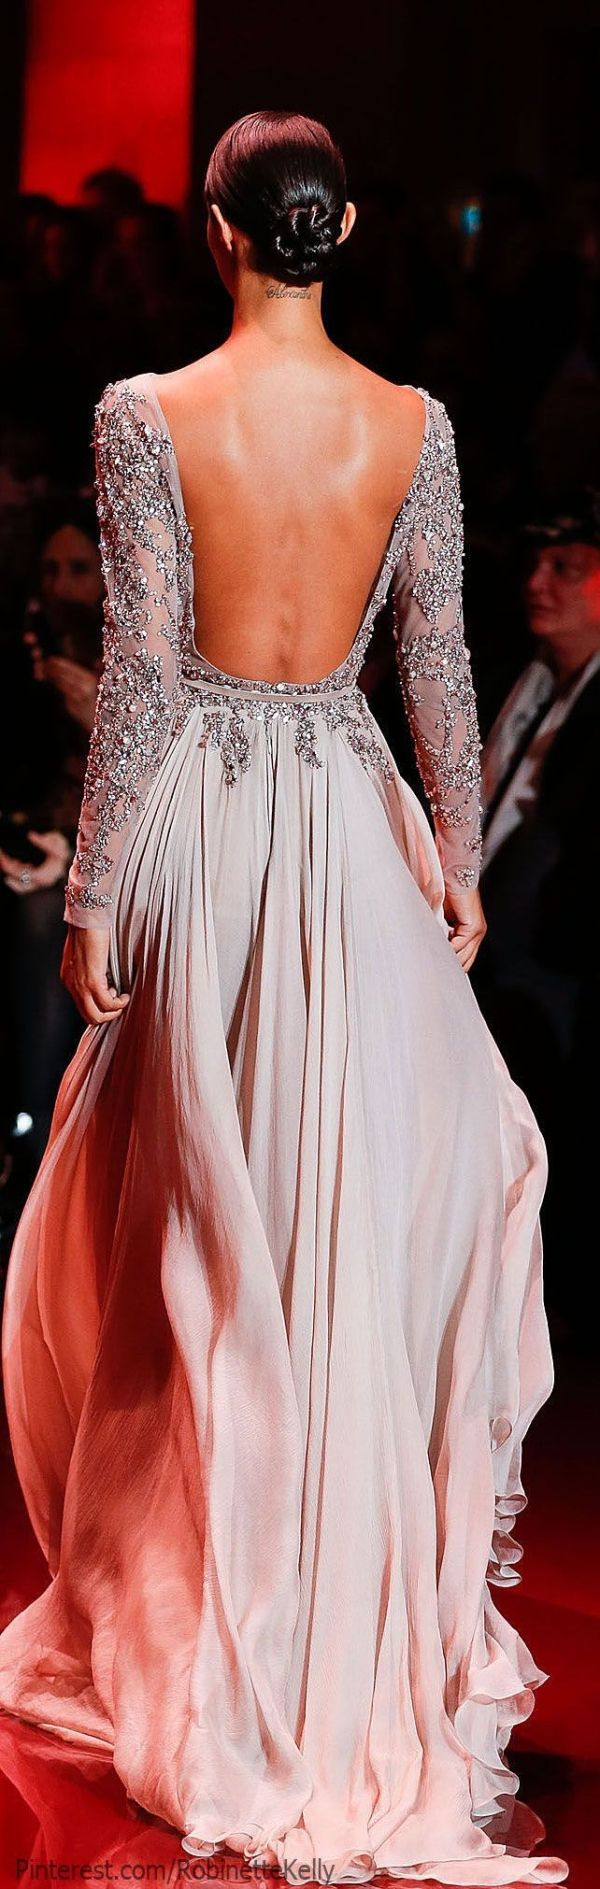 Elie saab haute couture love the lace sleeves gownsdresses